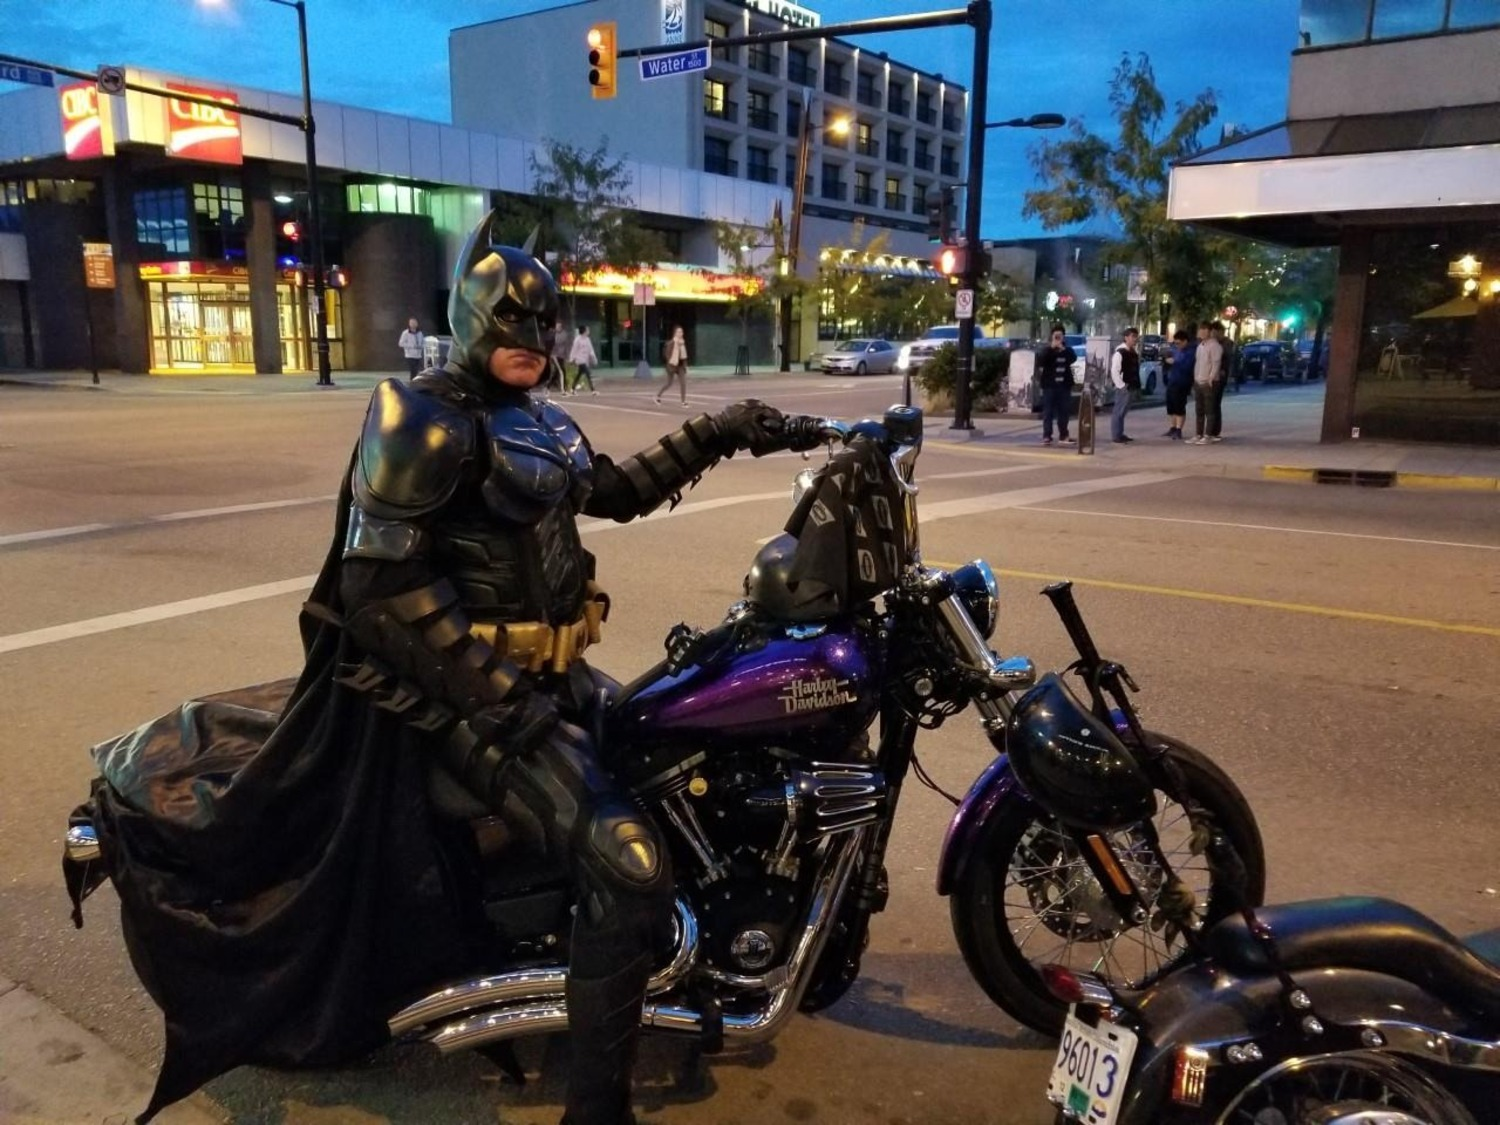 Batman pronto all'azione in Canada…ma la polizia lo allontana